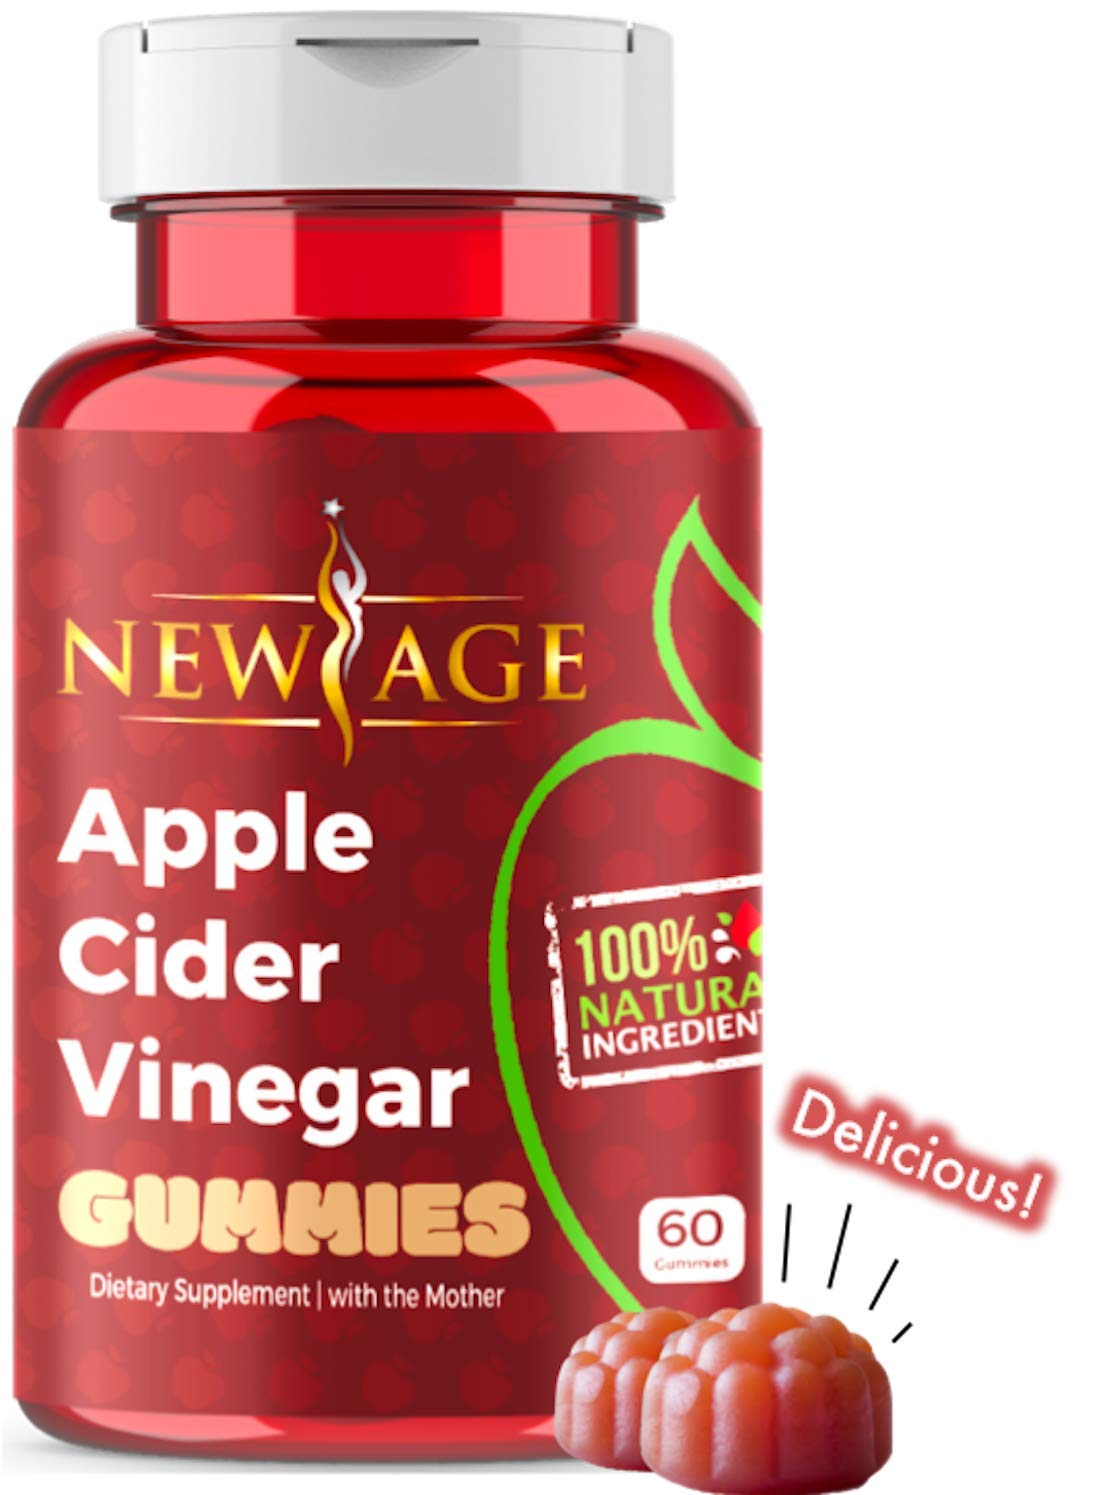 Apple Cider Vinegar Gummies by New Age - Amazing Taste with Raw, Organic, Unfiltered Mother ACV - Vegan & Non-GMO Gummy Alternative to ACV Capsules. Weight Control Detox Cleanse Support. Made in USA.